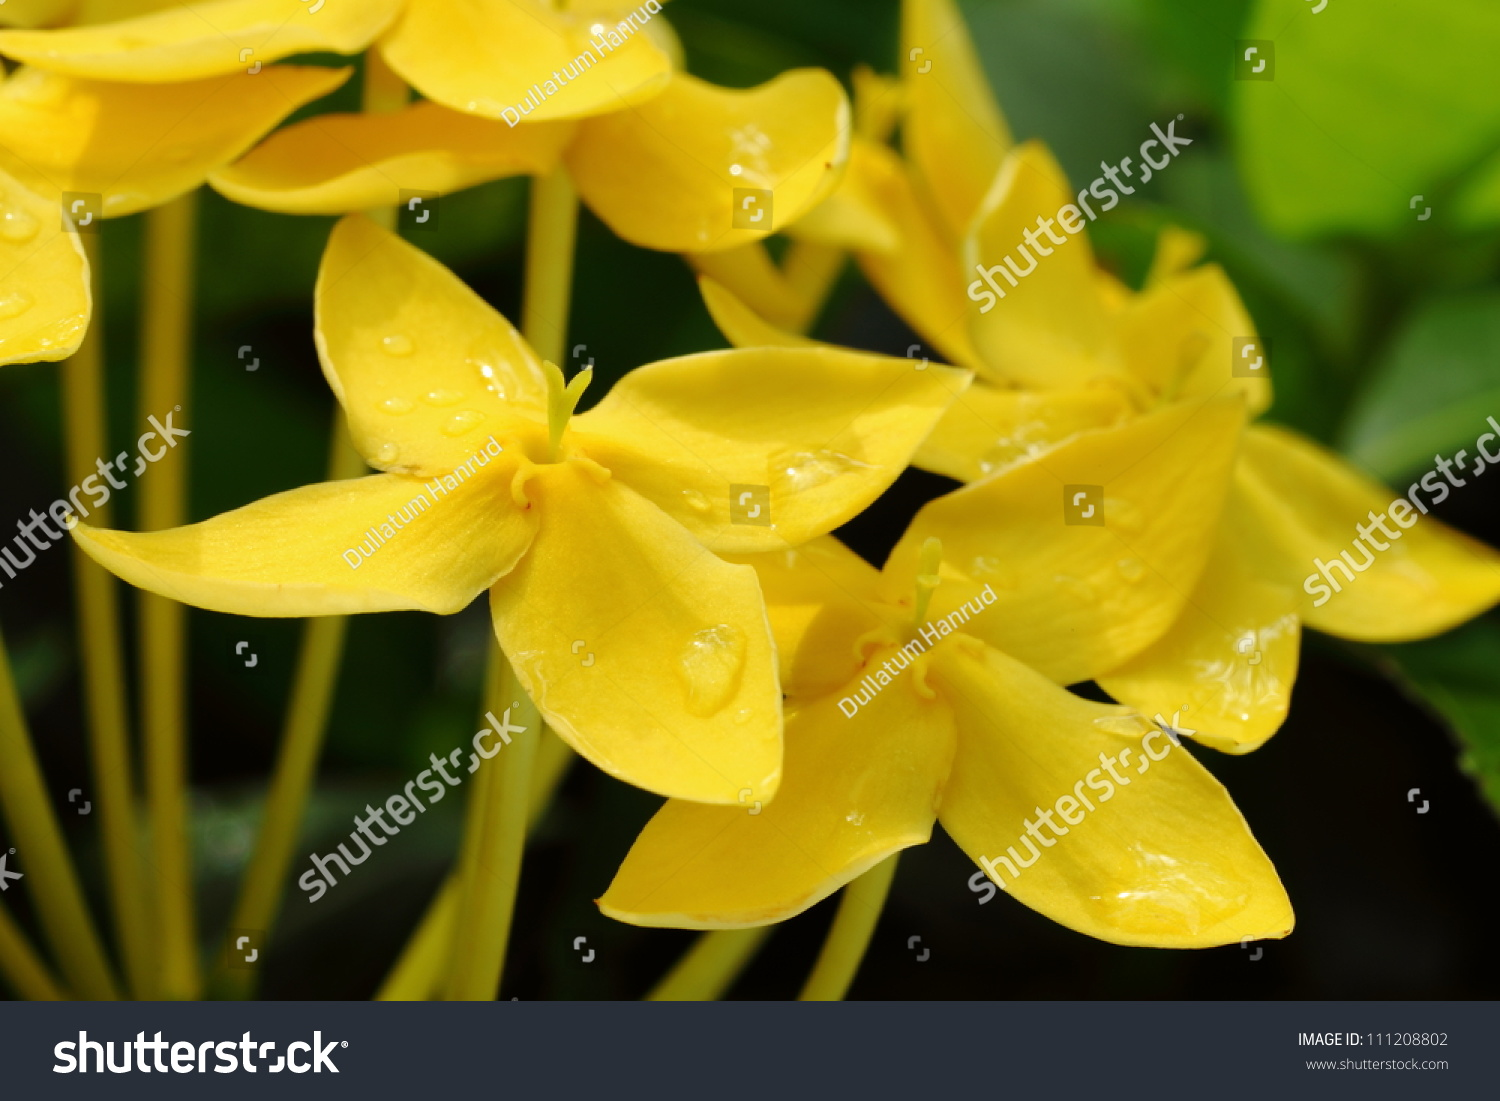 Closeup yellow flowers west indian jasminescientific stock photo close up yellow flowers west indian jasmineientific name ixora chinensis lamk izmirmasajfo